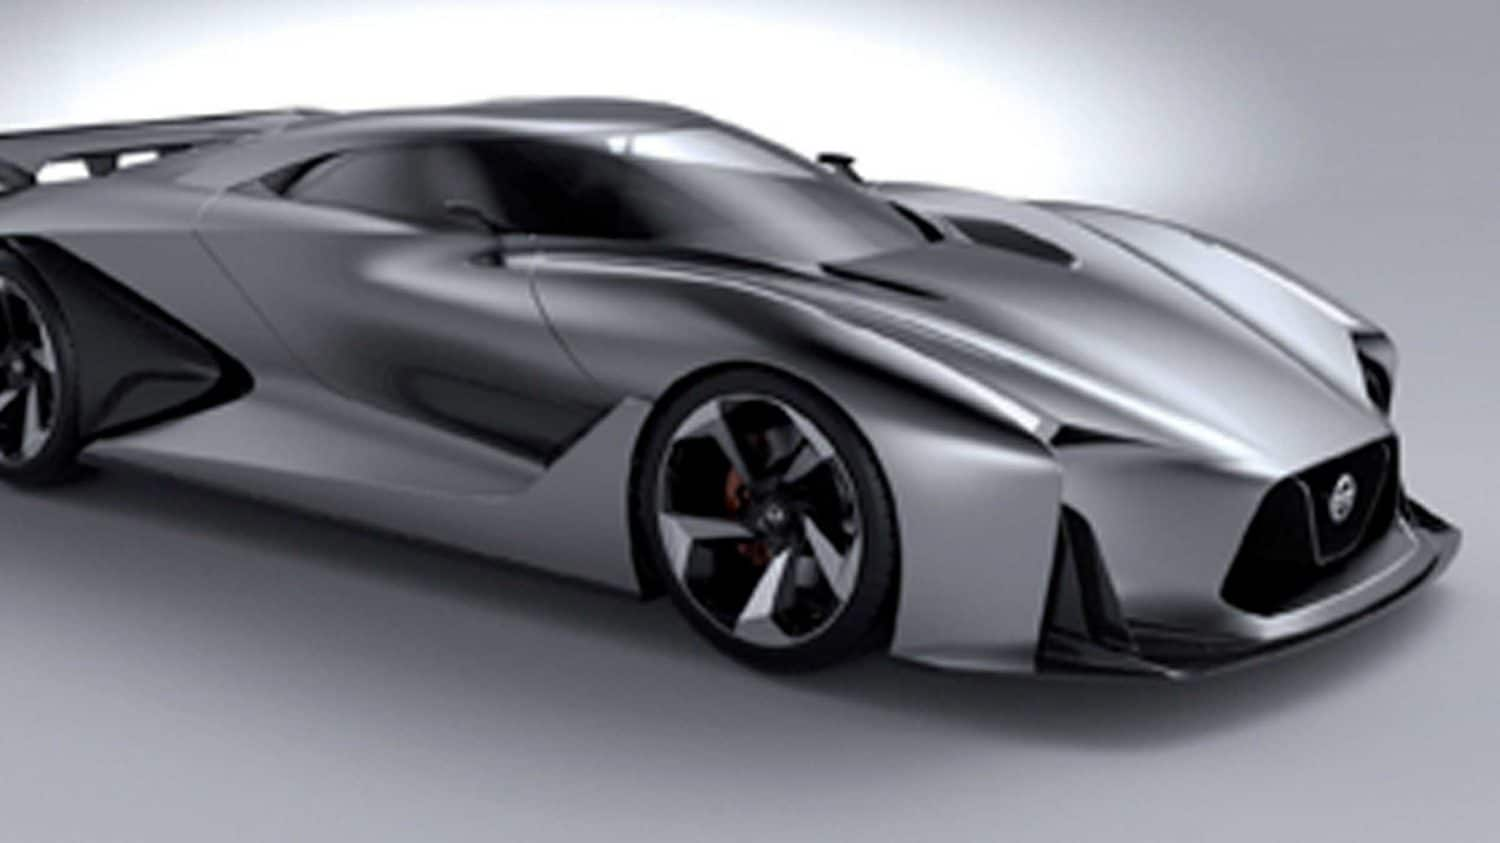 84 Great 2020 Concept Nissan Gtr Exterior and Interior for 2020 Concept Nissan Gtr